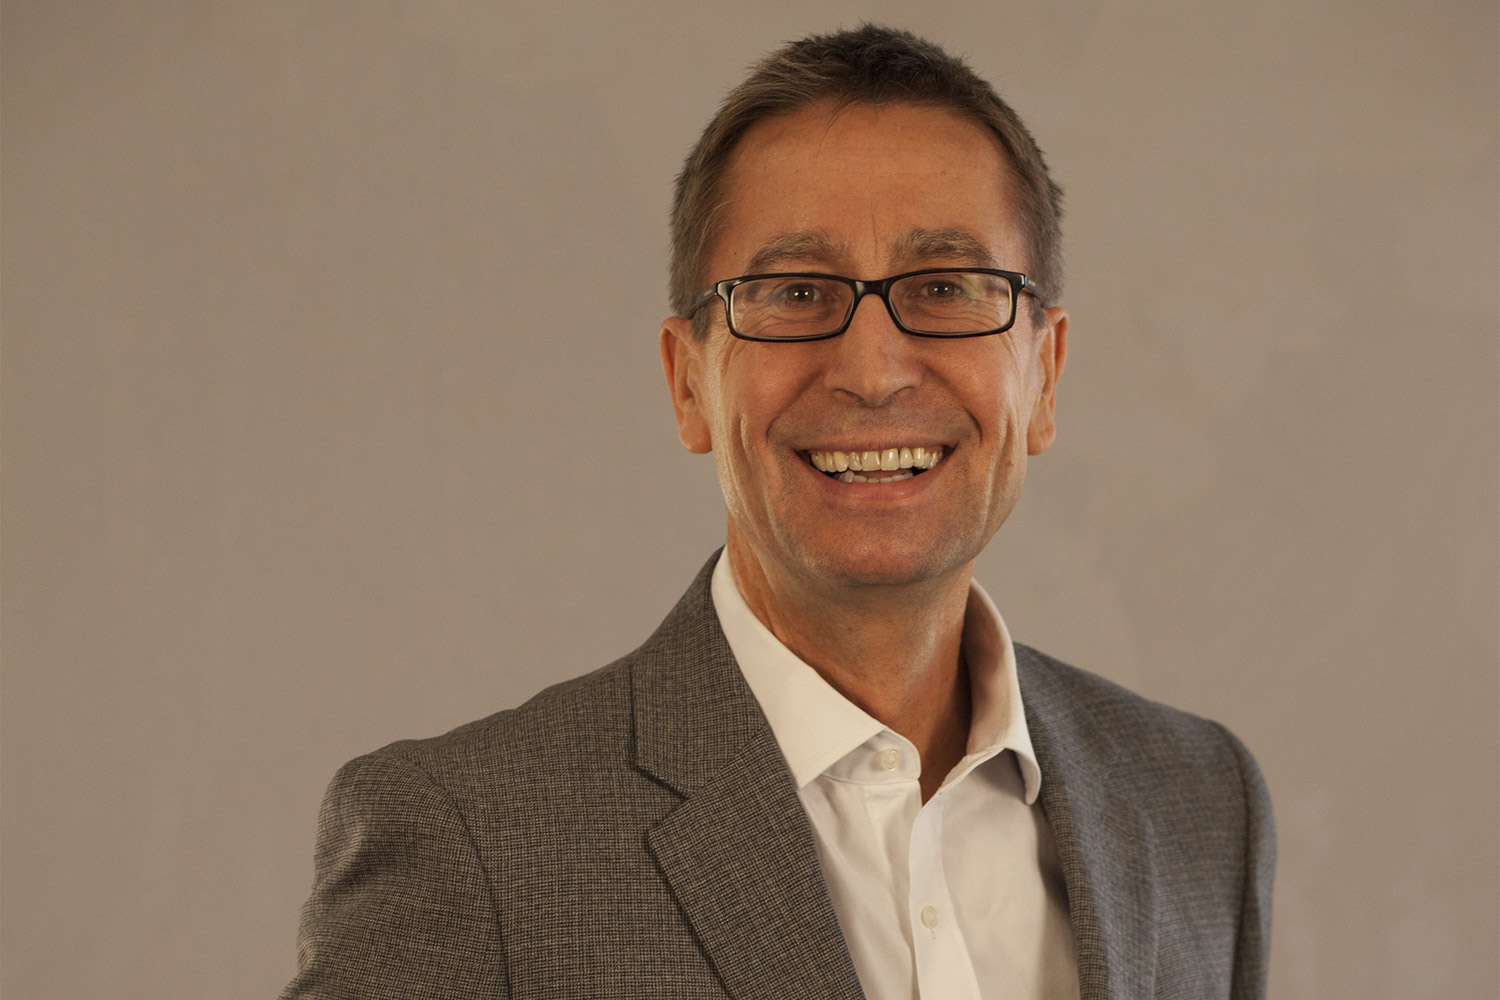 Interview: Steve Byrne on taking Counsellors to 'a whole new level'